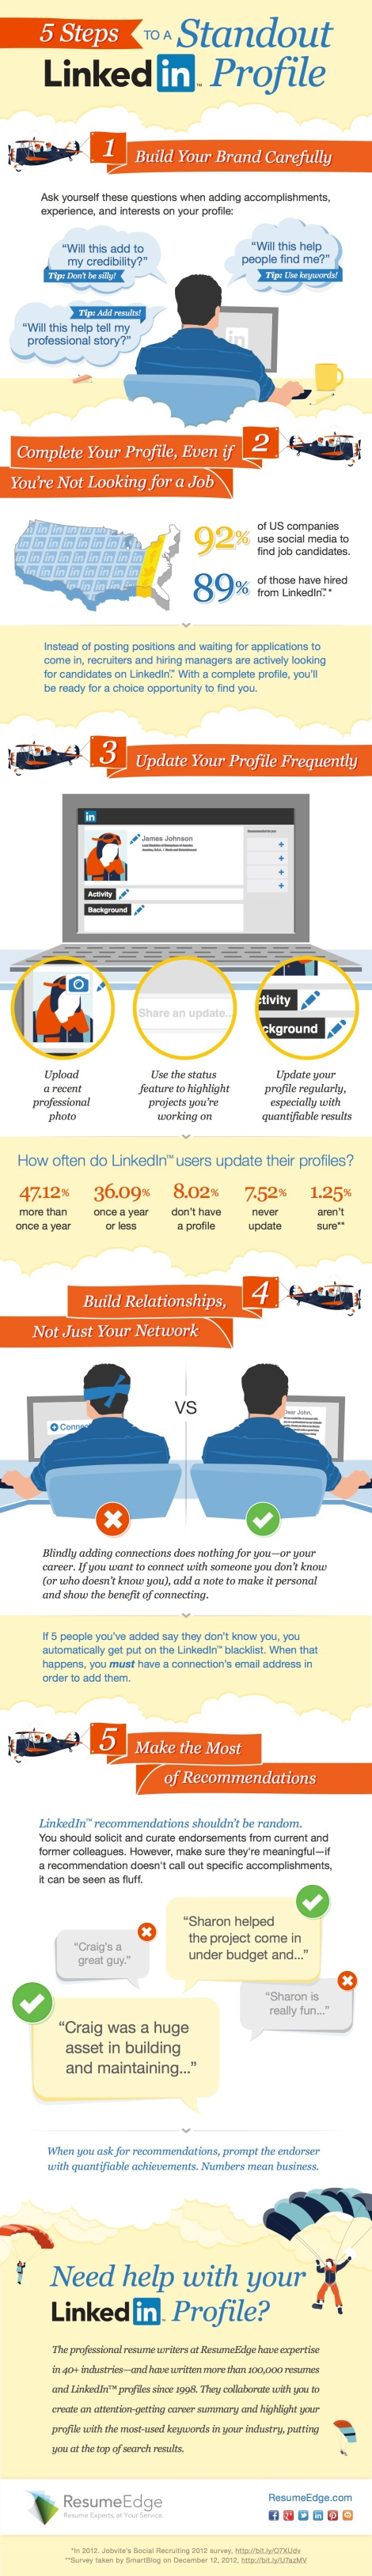 1323_ResumeEdge_Q1_Infographic_FIN